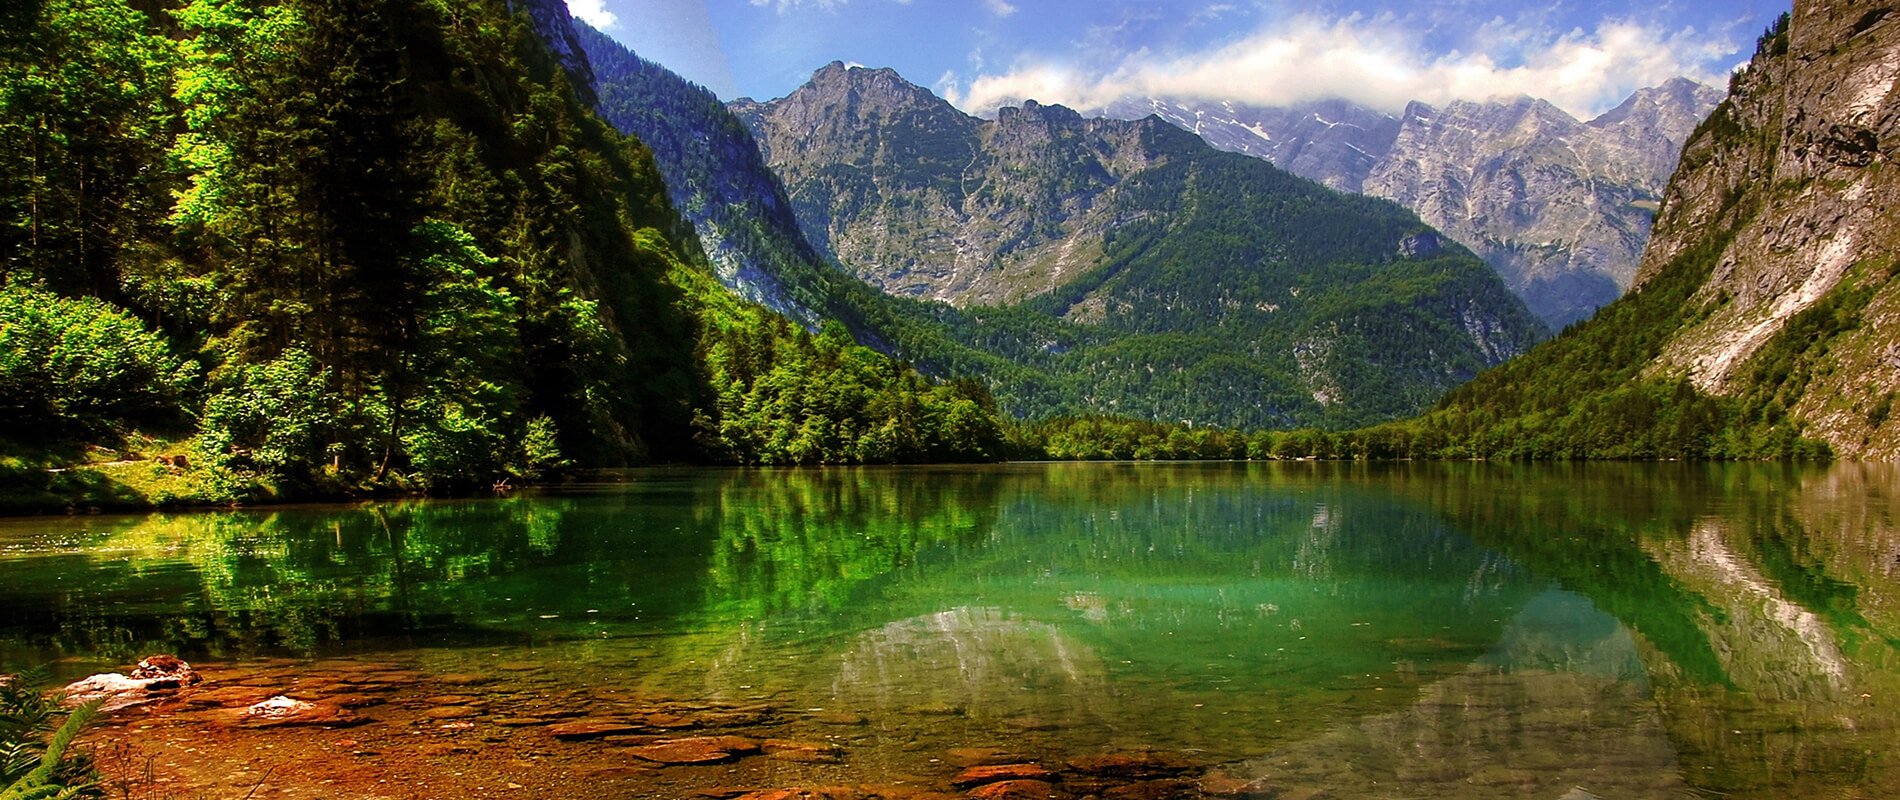 Lake Königssee, the pristine pearl of Bavaria